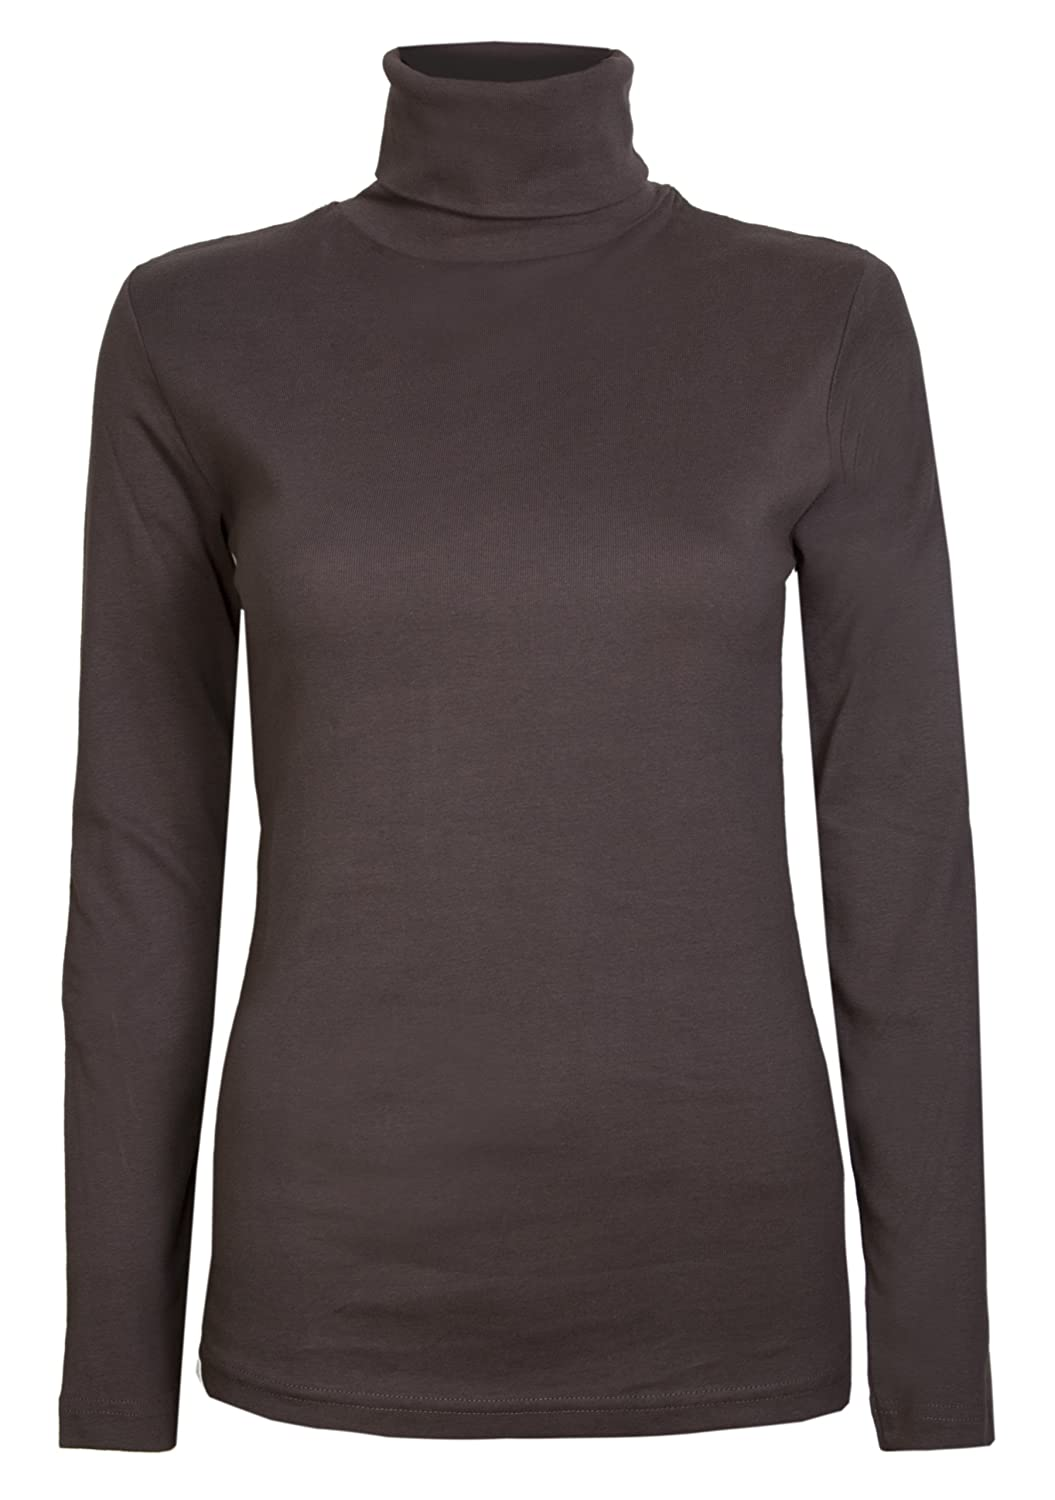 Womens Roll Necks Ladies Polo Neck Tops Exclusively Brody & CoPlain Winter Ski Quality Stretch Jersey Cotton